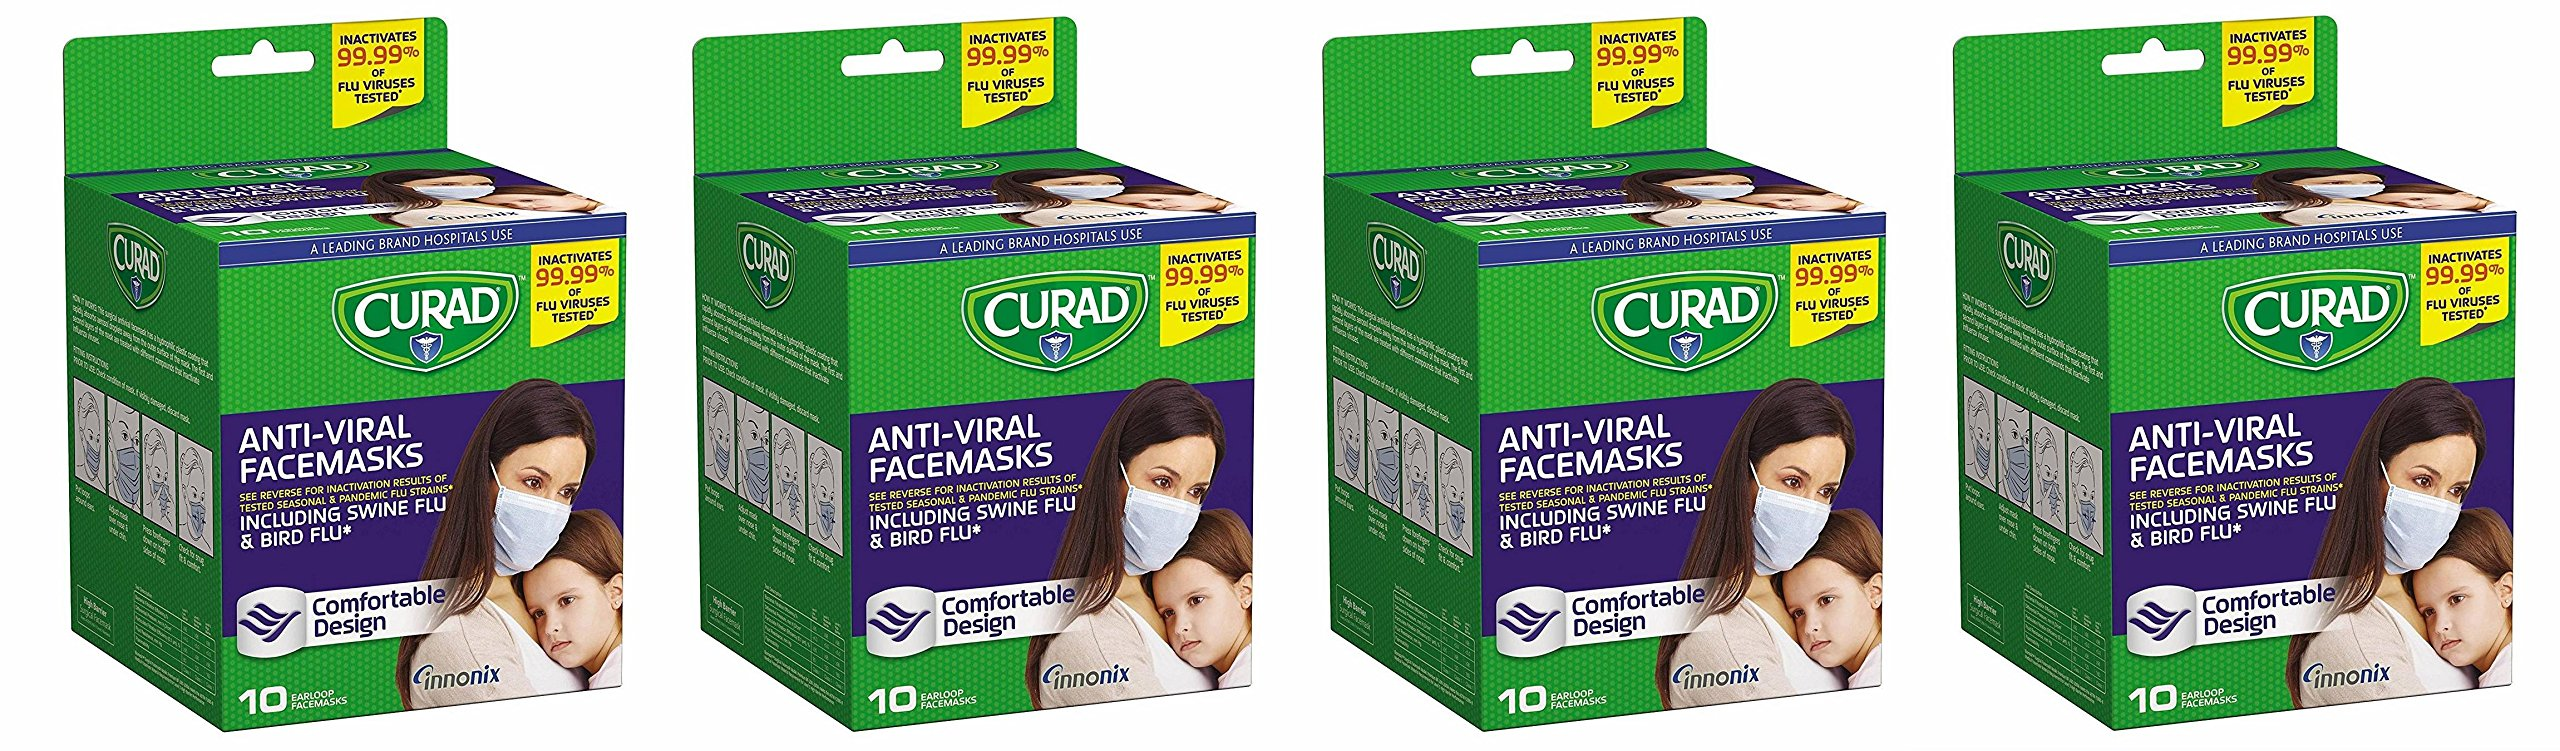 Curad Antiviral lGcRgv Face Mask, 10 Count (Pack of 4)